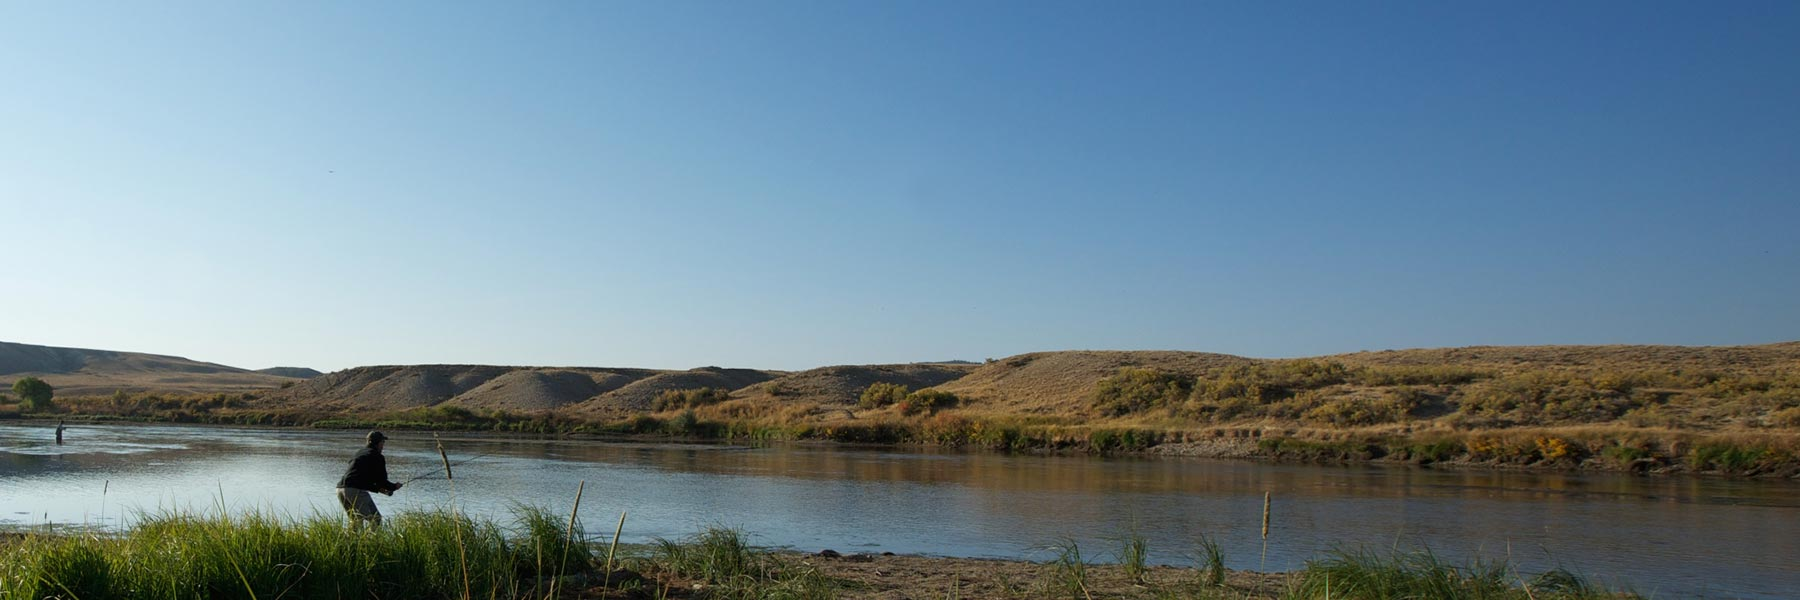 Header-Background-Wading-The-North-Platte